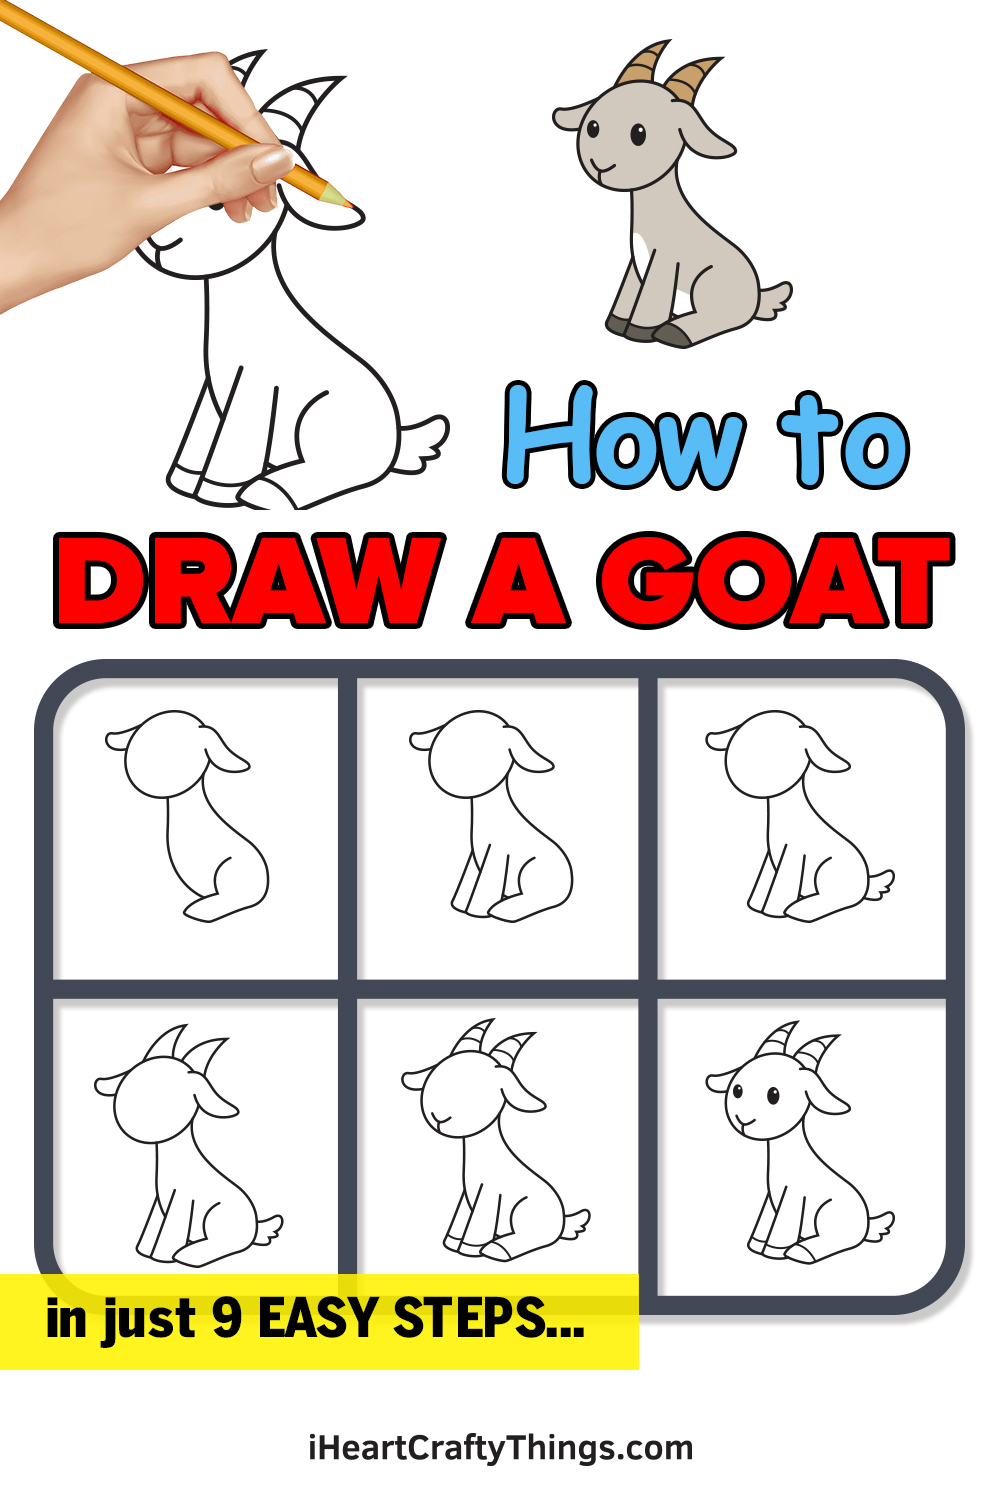 how to draw a goat in 9 easy steps